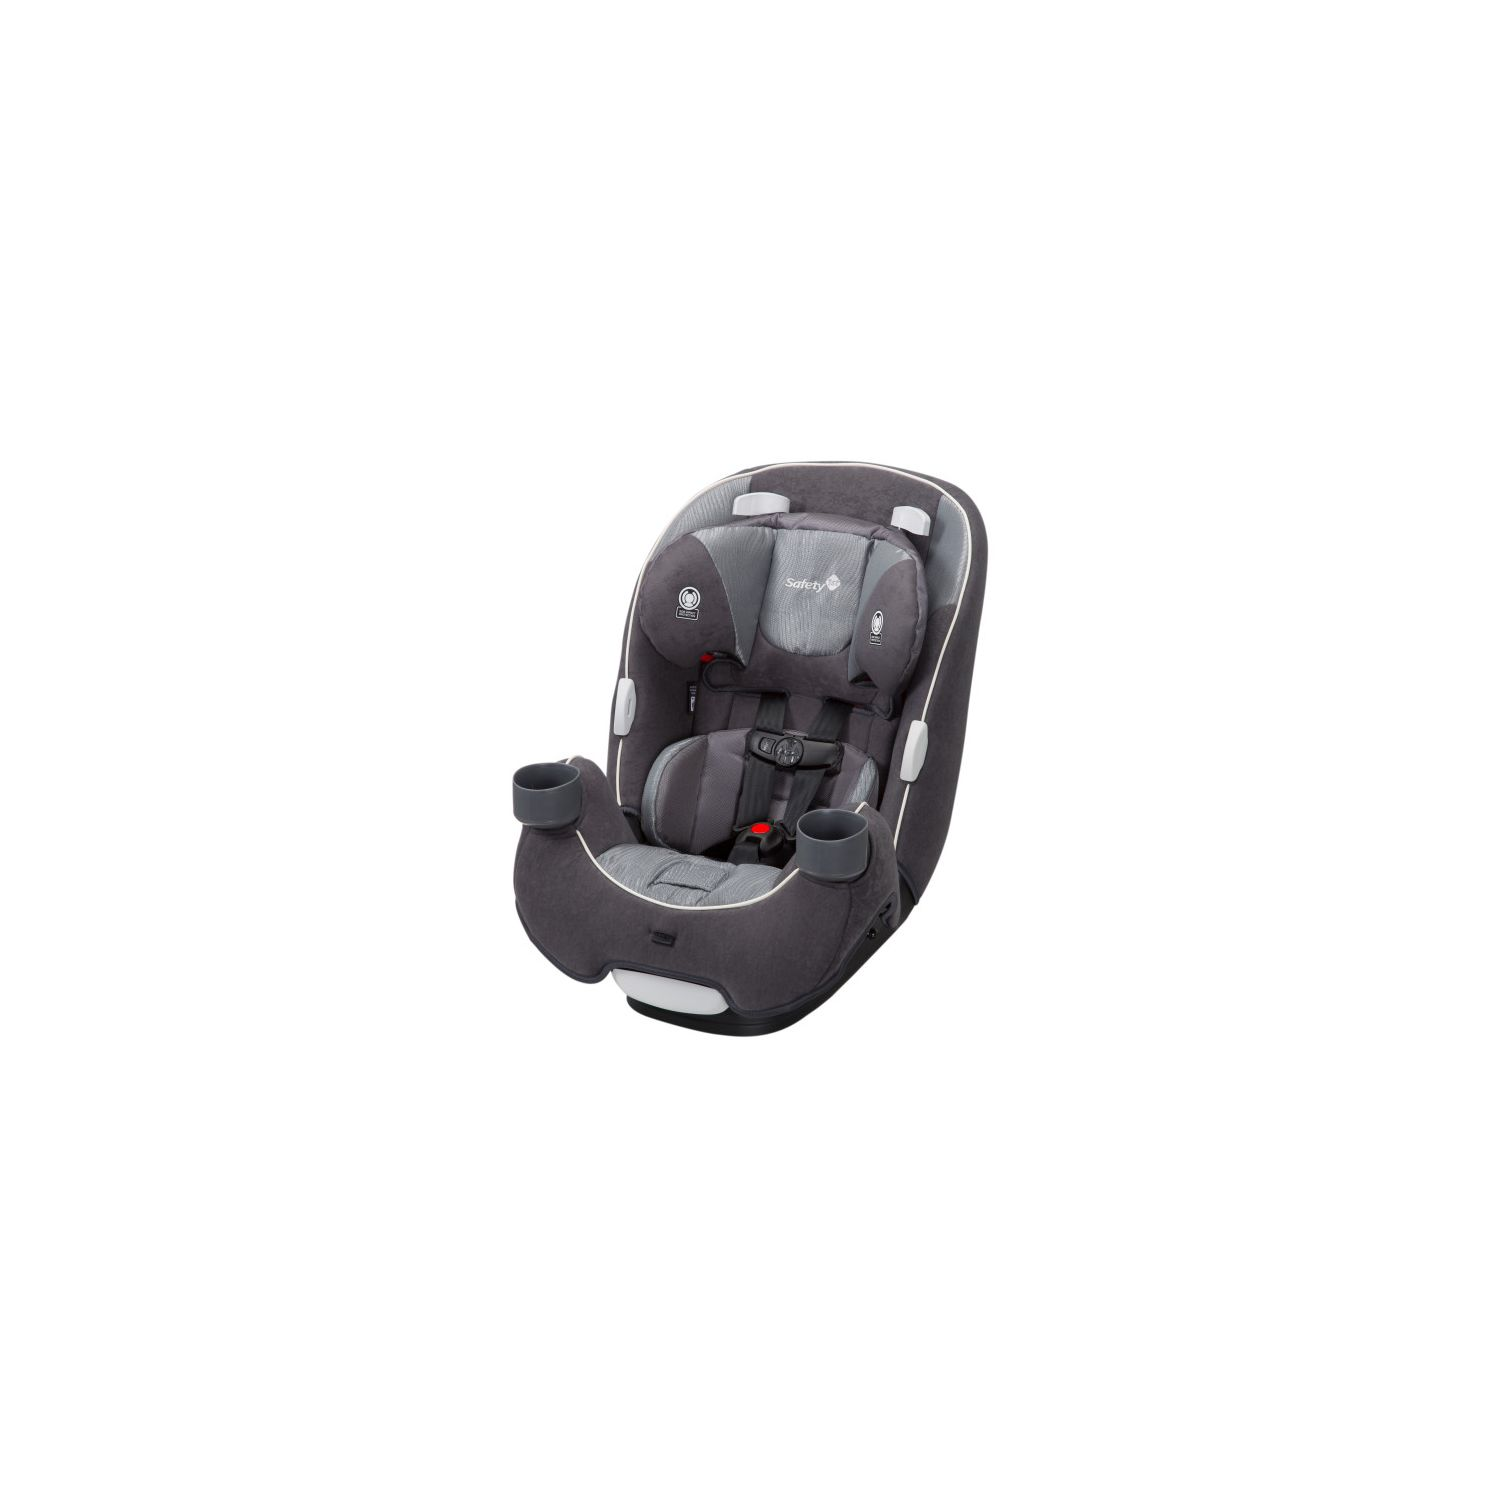 Safety 1st Ever-Fit 3-in-1 Convertible Car Seat, Taggart - Walmart.com